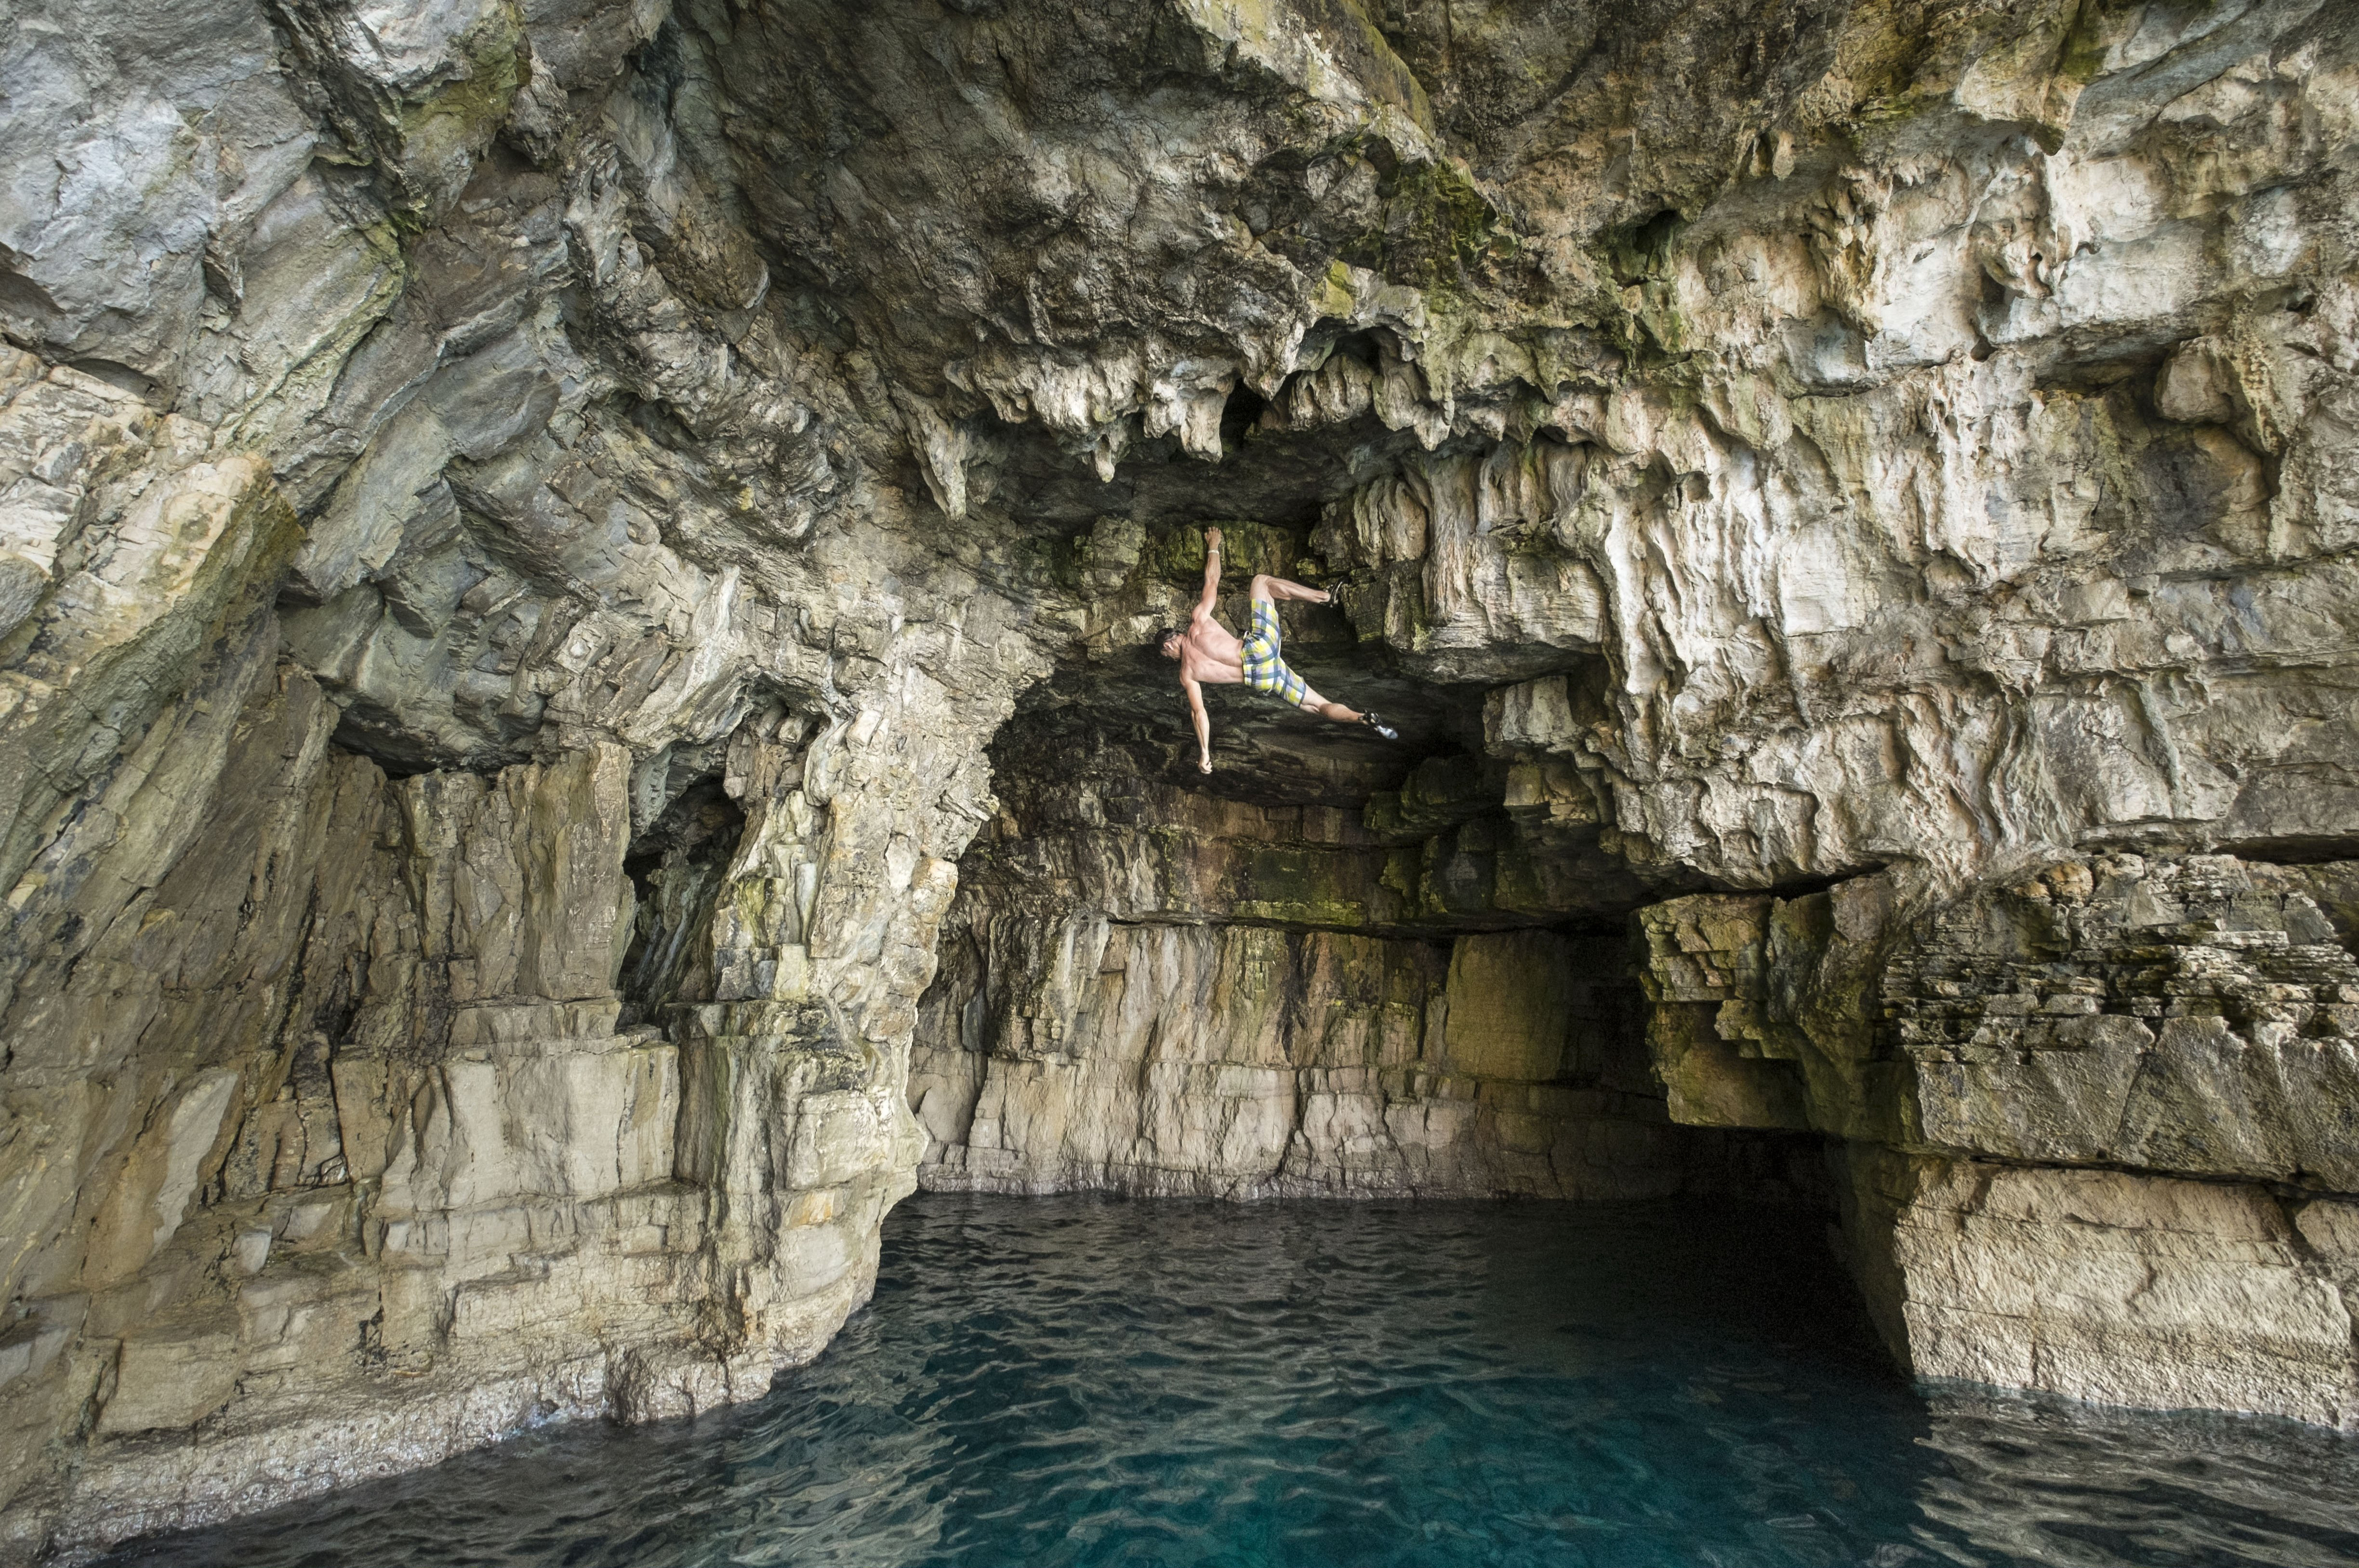 Aug. 4, 2014. Andreas (43) of Austria climbs in an 8 to 10 meter-high cave of Stoja near Pula, Croatia. There are many opportunities for the so called 'deep water soloing' - free climbing over the water - at the mile-long cliffs of Croatia.